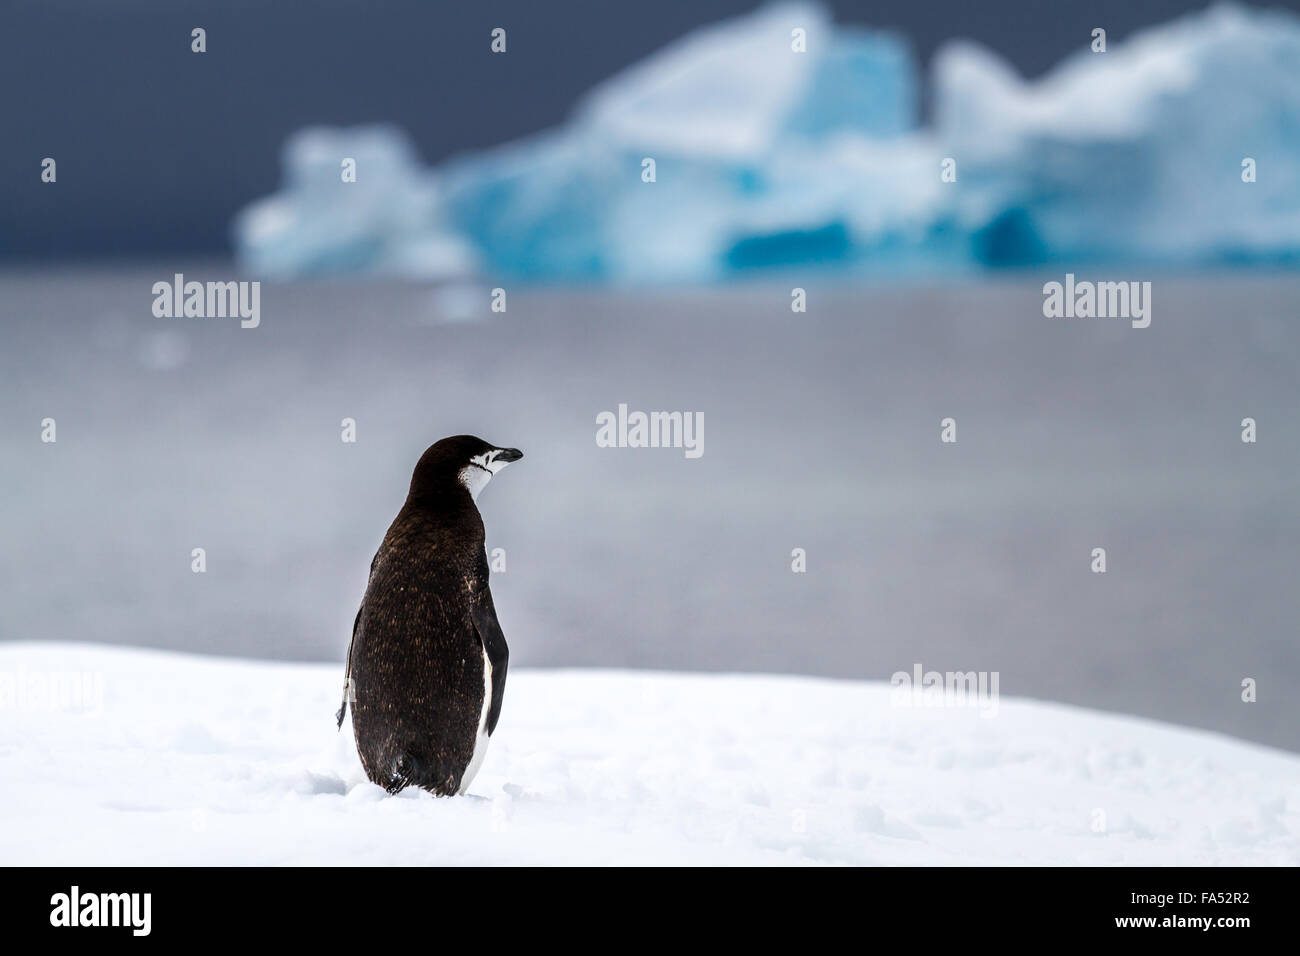 One wistful chinstrap penguin looking out over the sea in the snow in Antarctica with an iceberg in the background - Stock Image